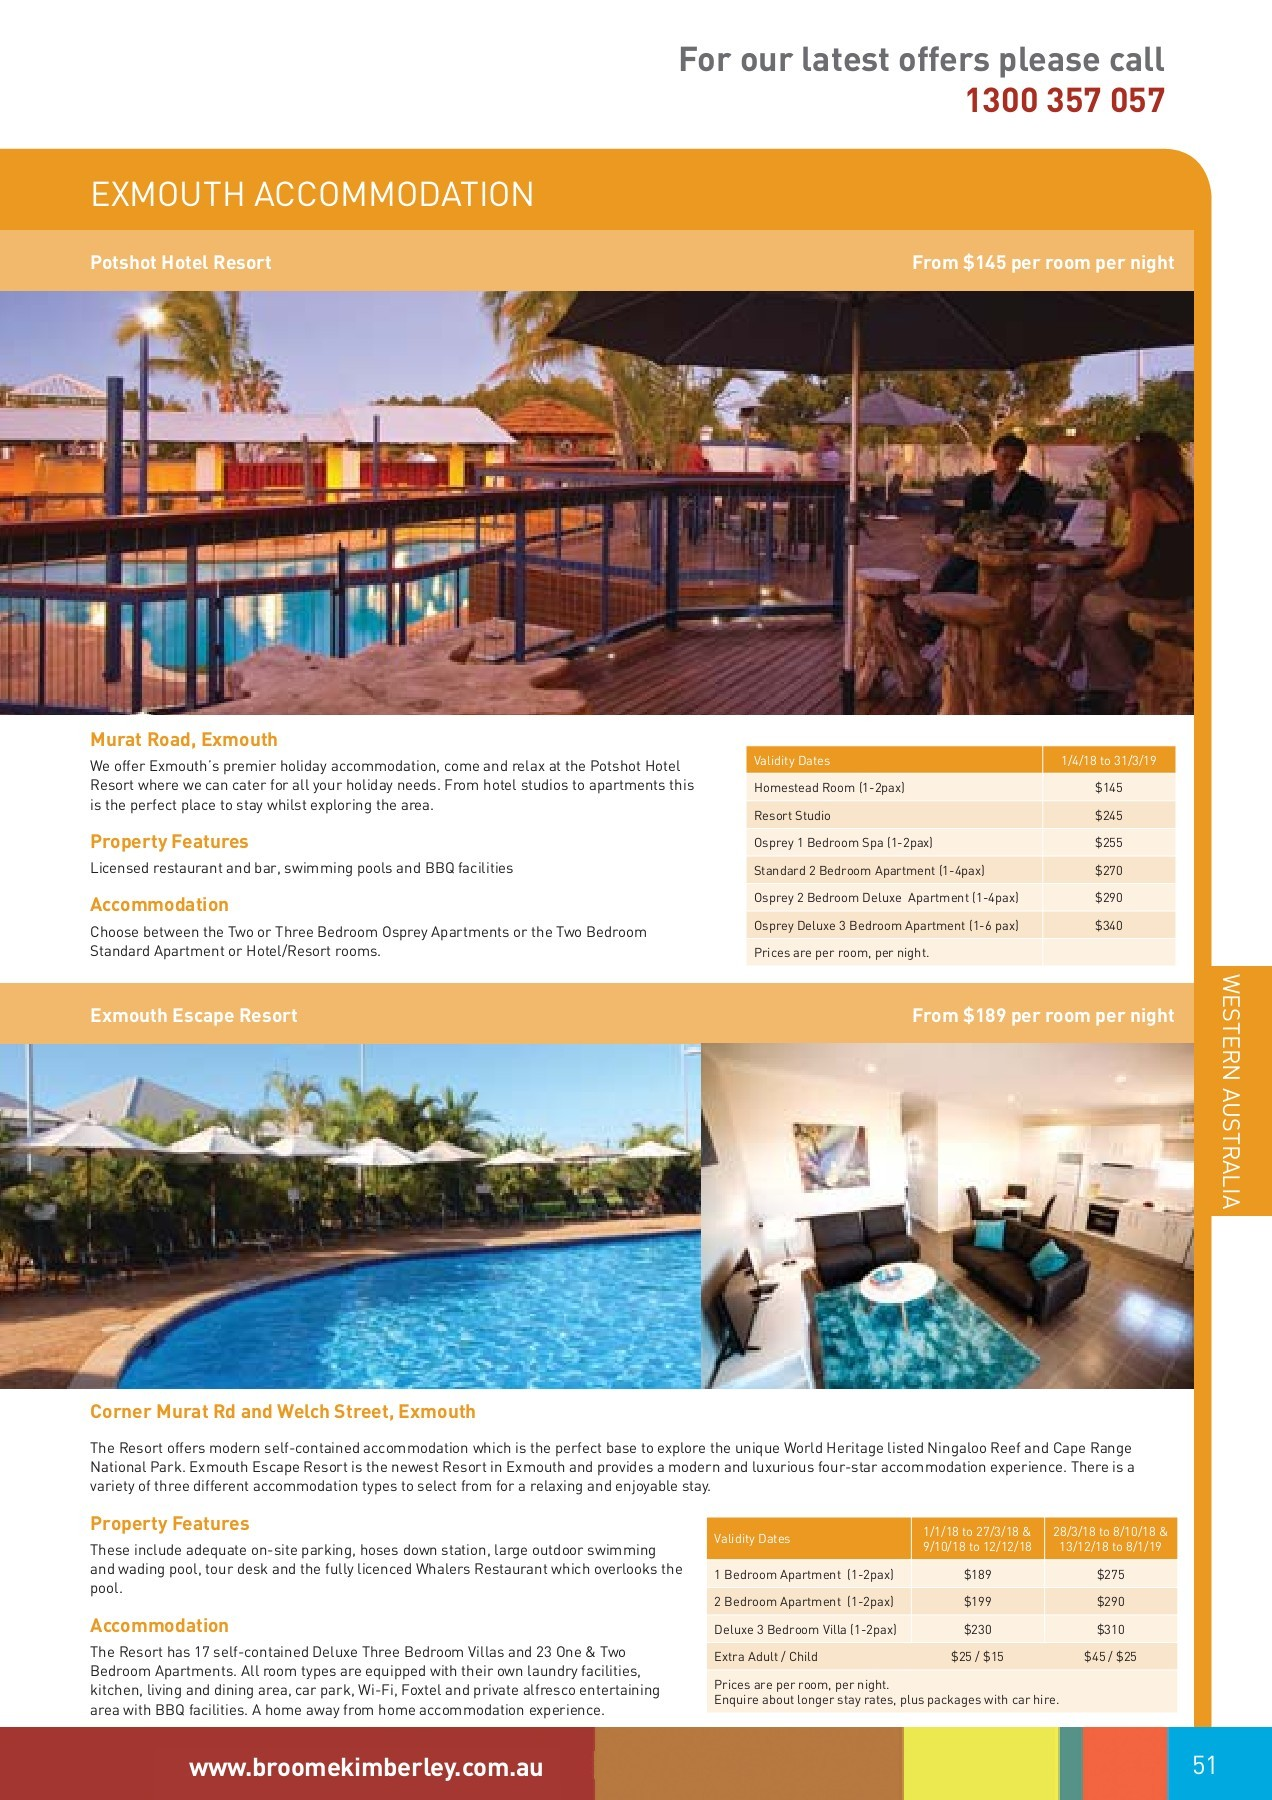 Cucina Restaurant Hillarys Broome Kimberley Beyond 2018 2019 Pages 51 100 Text Version